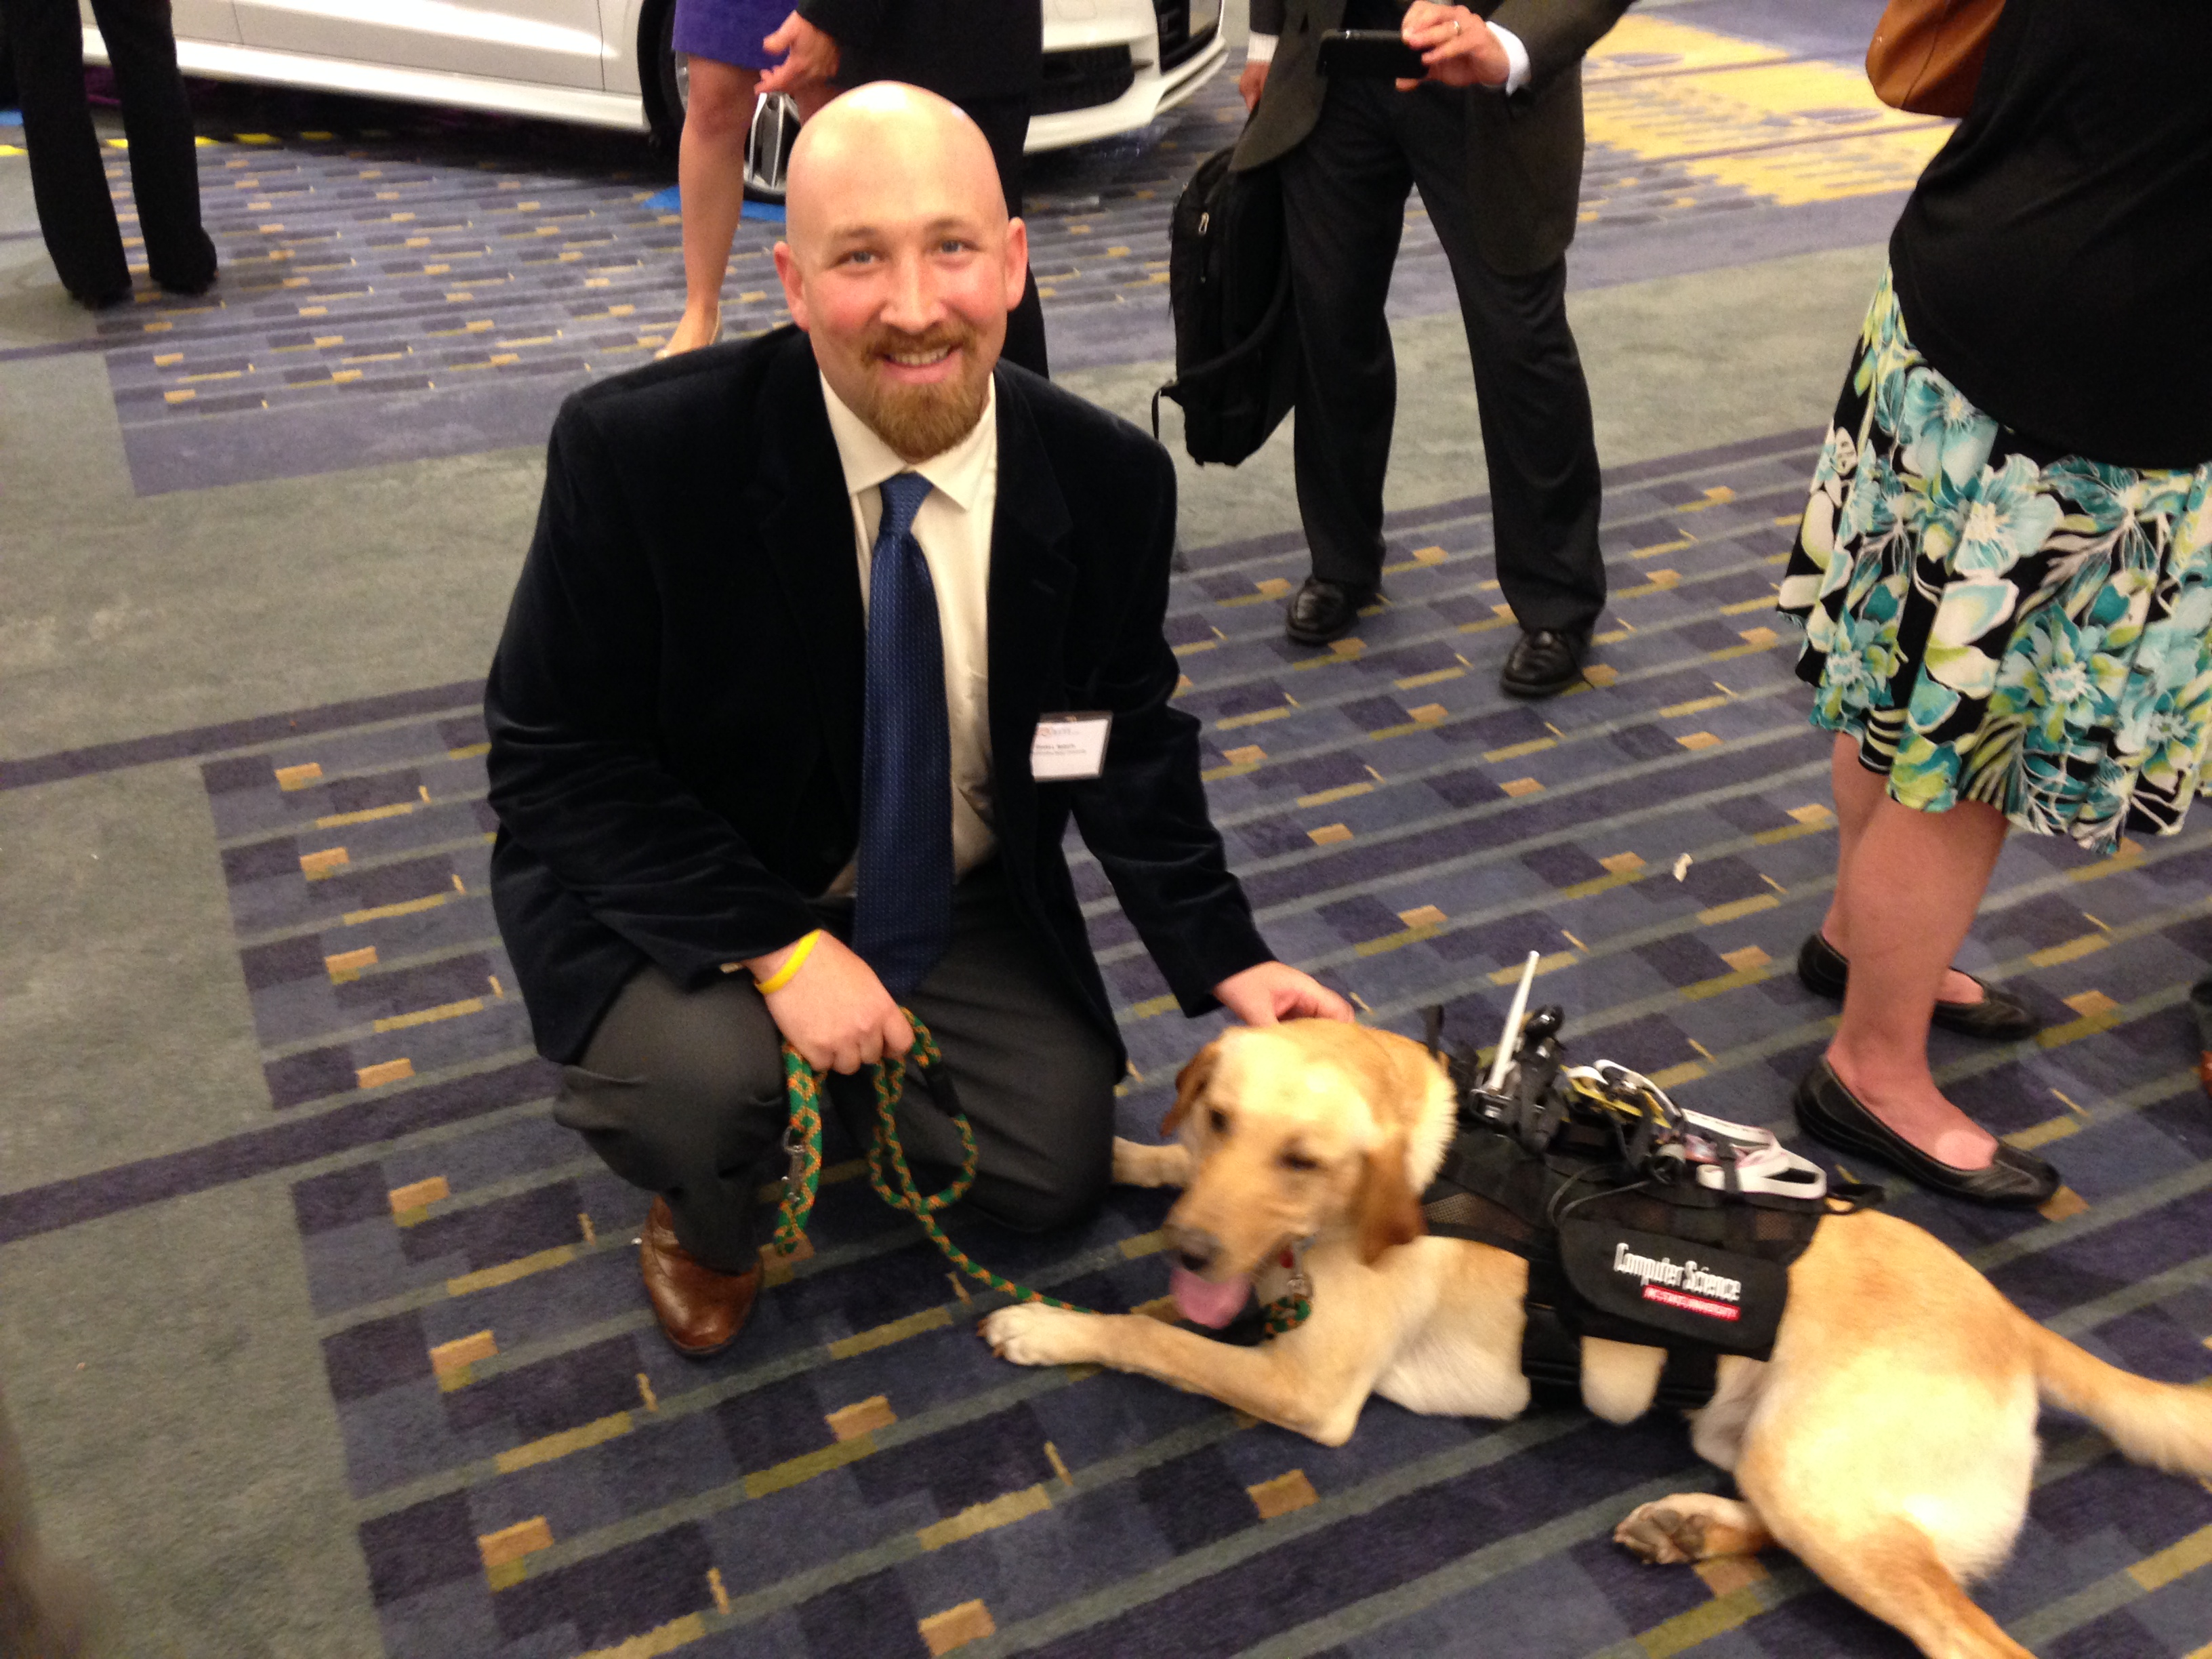 David Robers with Diesel, a search and rescue dog that is part of the SERS program that uses rescue dogs to collect data from disaster zones.